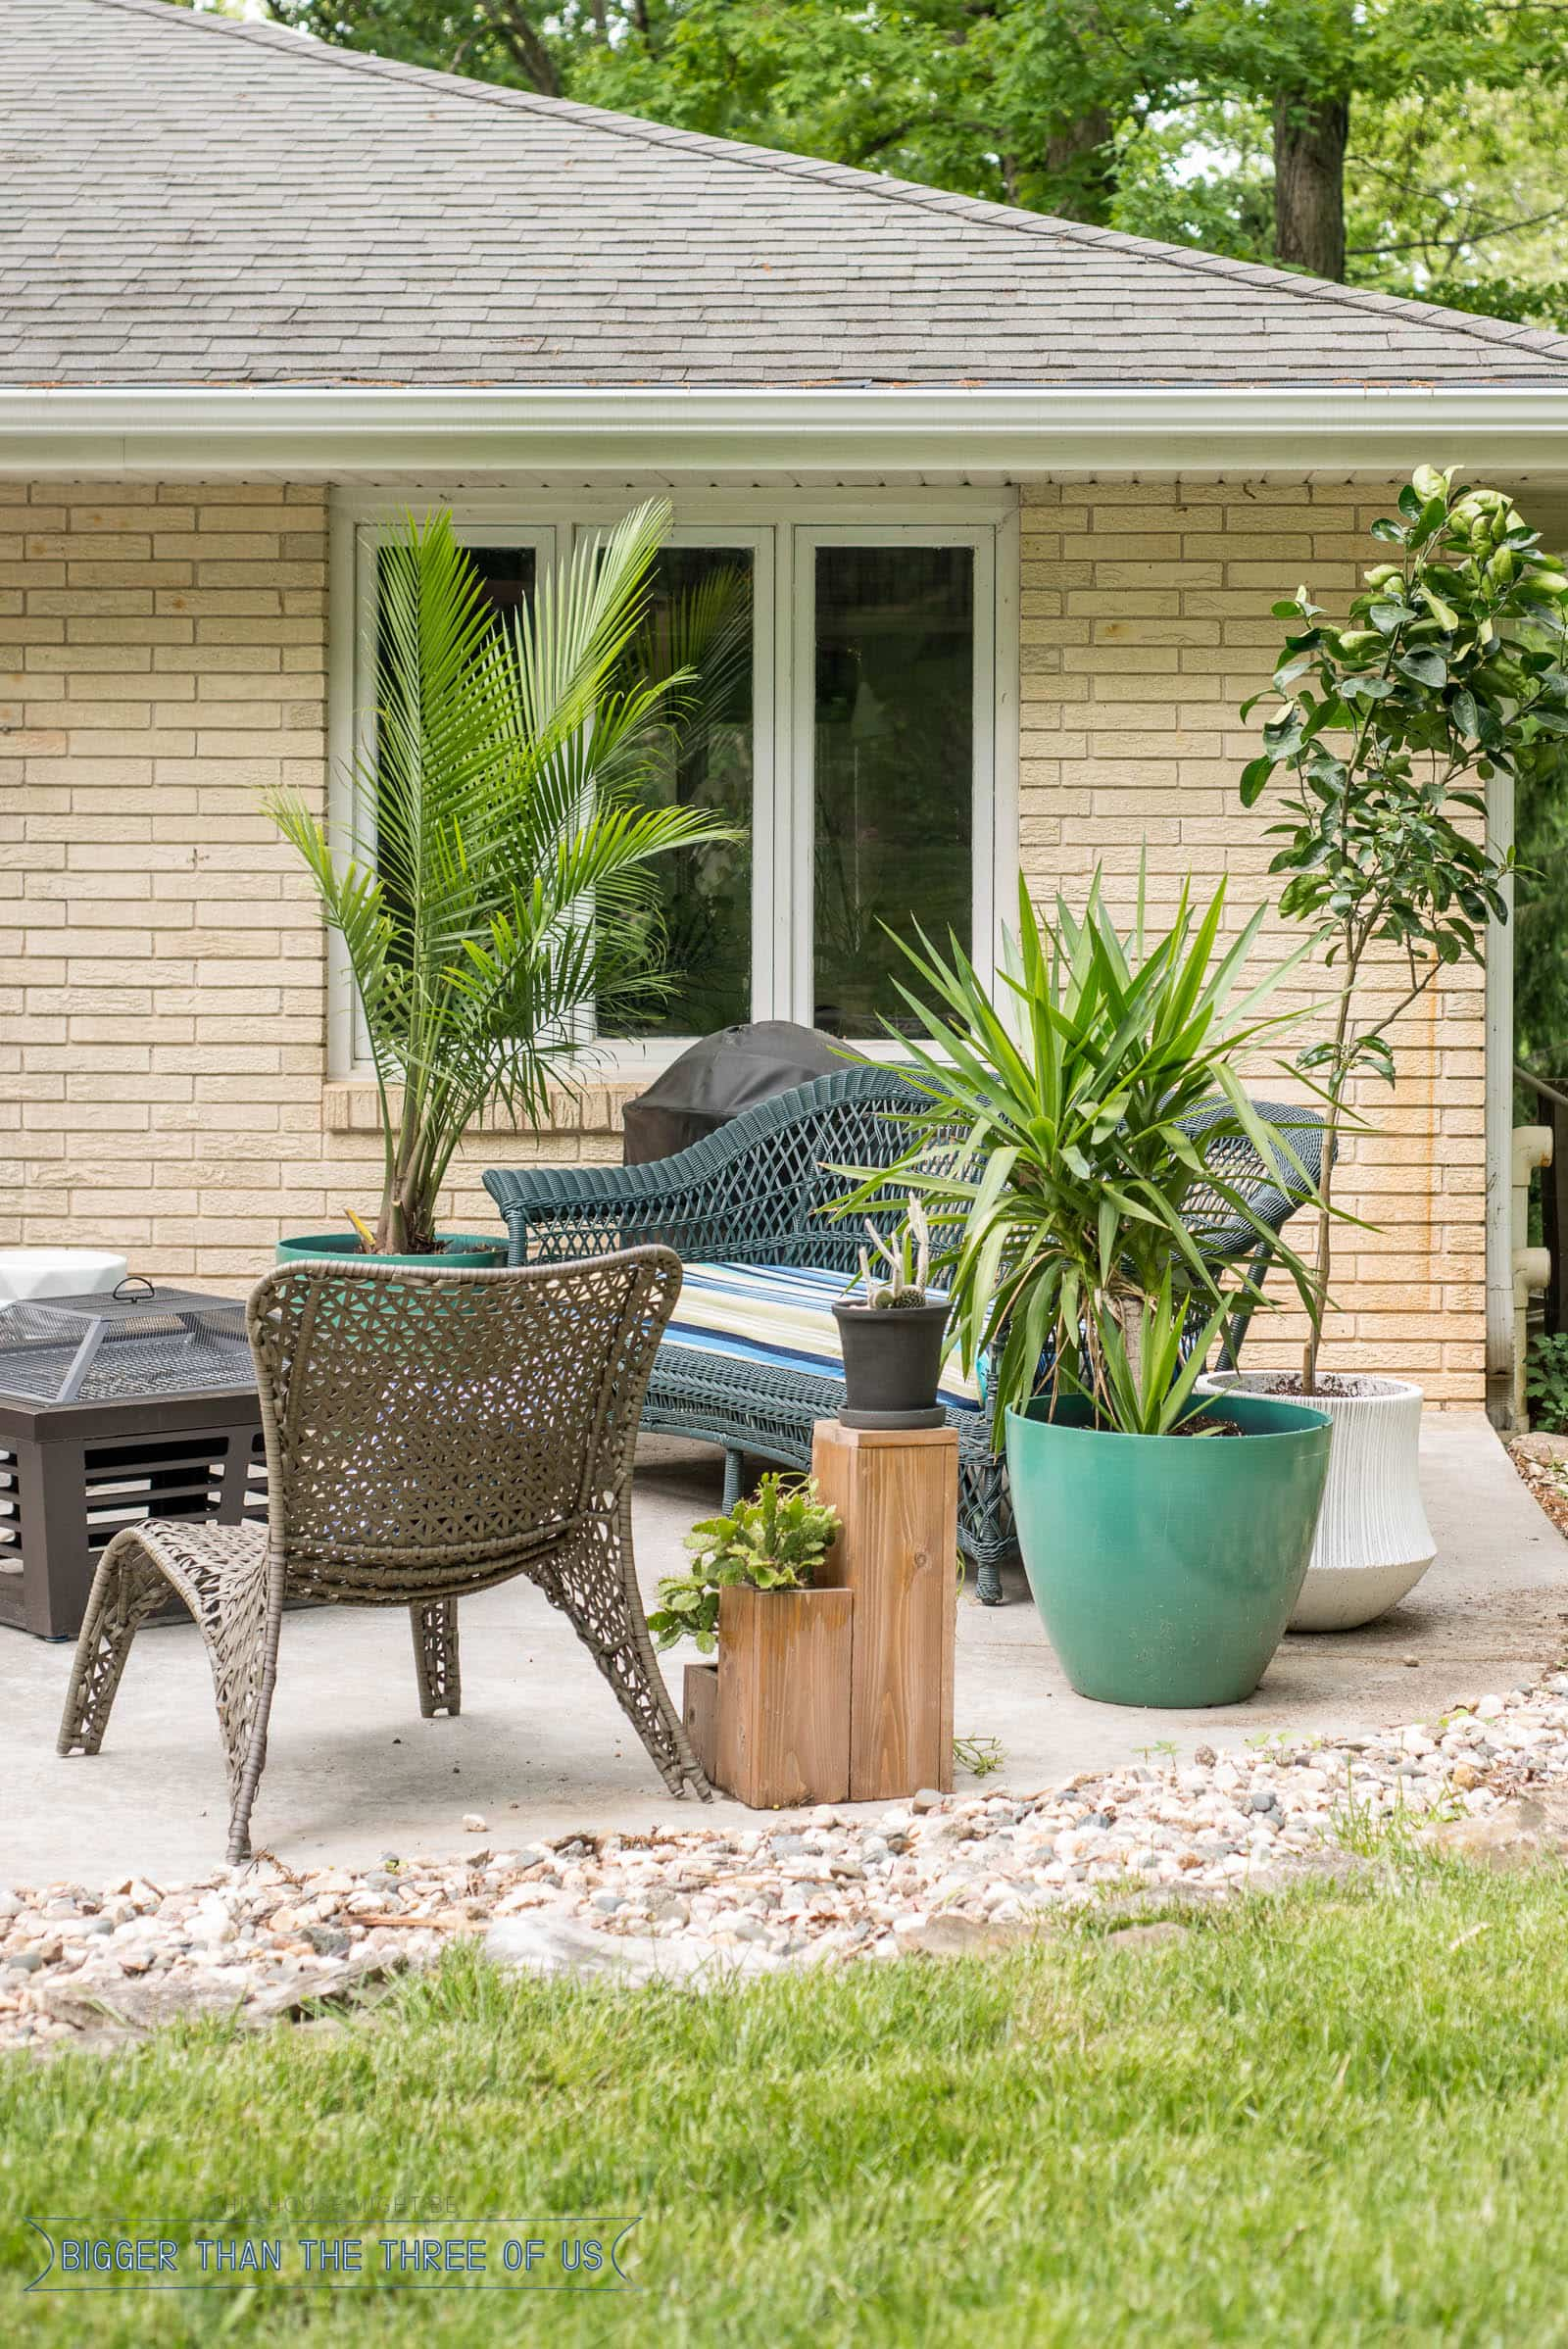 Outdoor patio for the summer featuring a budget friendly patio furniture, diy patio decor and lots of plants for color and texture. #patio #outdoorfurniture #outside #patiofurniture